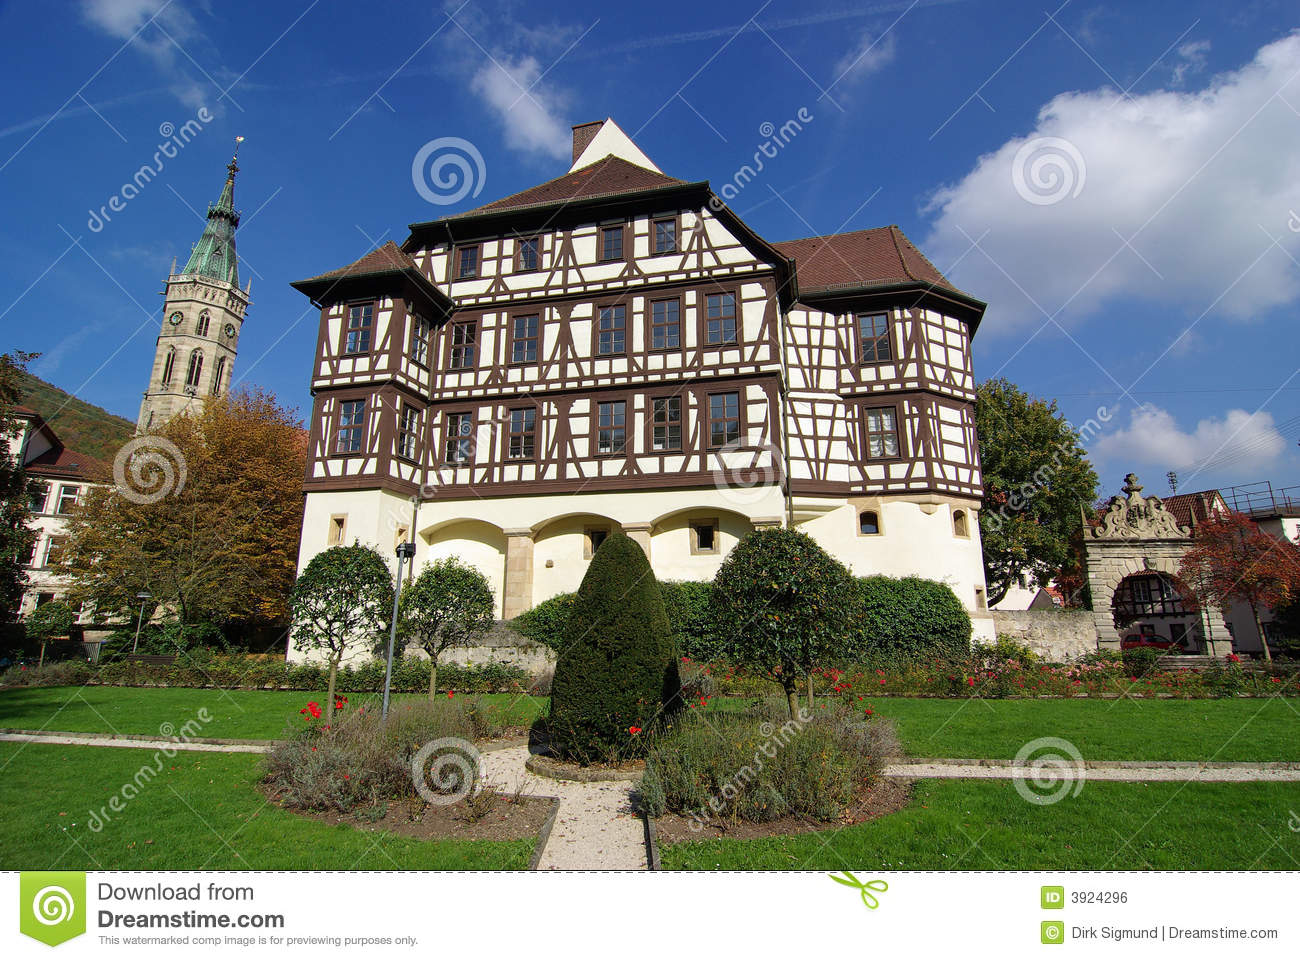 Bad Urach Germany  City pictures : Castle Bad Urach founded 1443, Bad Urach, Germany.